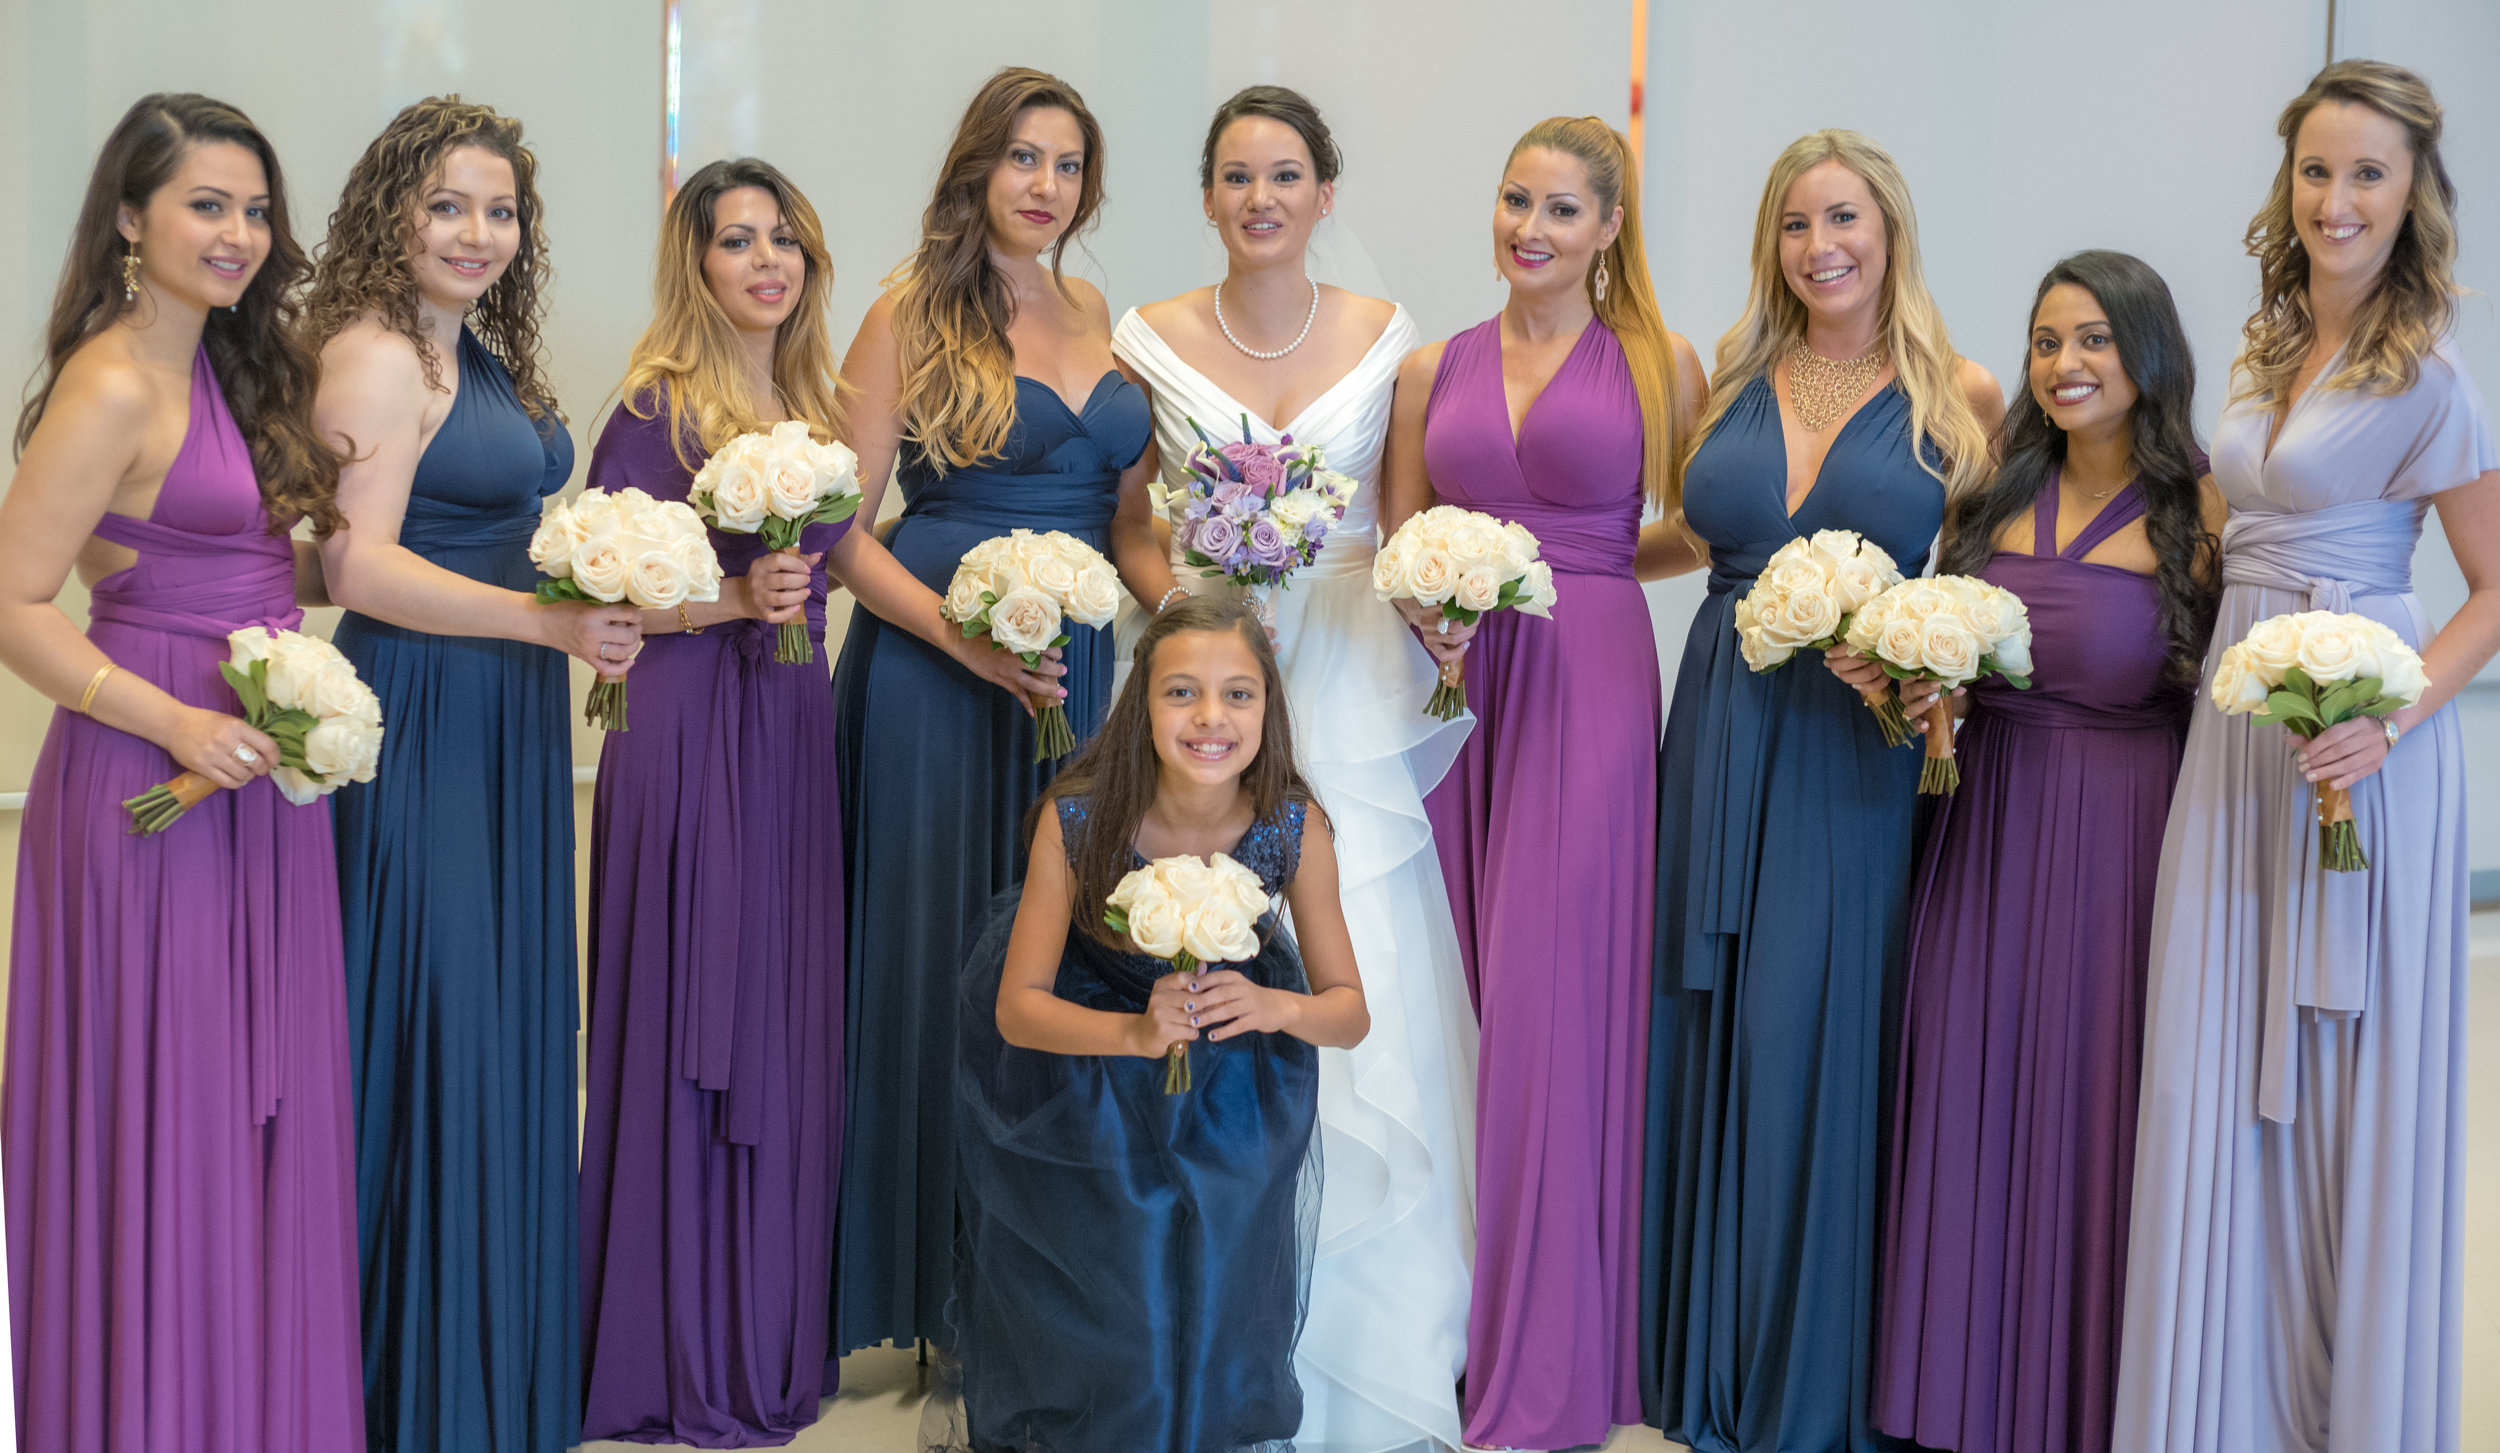 The team: Bride's Maids, Junior Bride's Maid and Maid of Honour